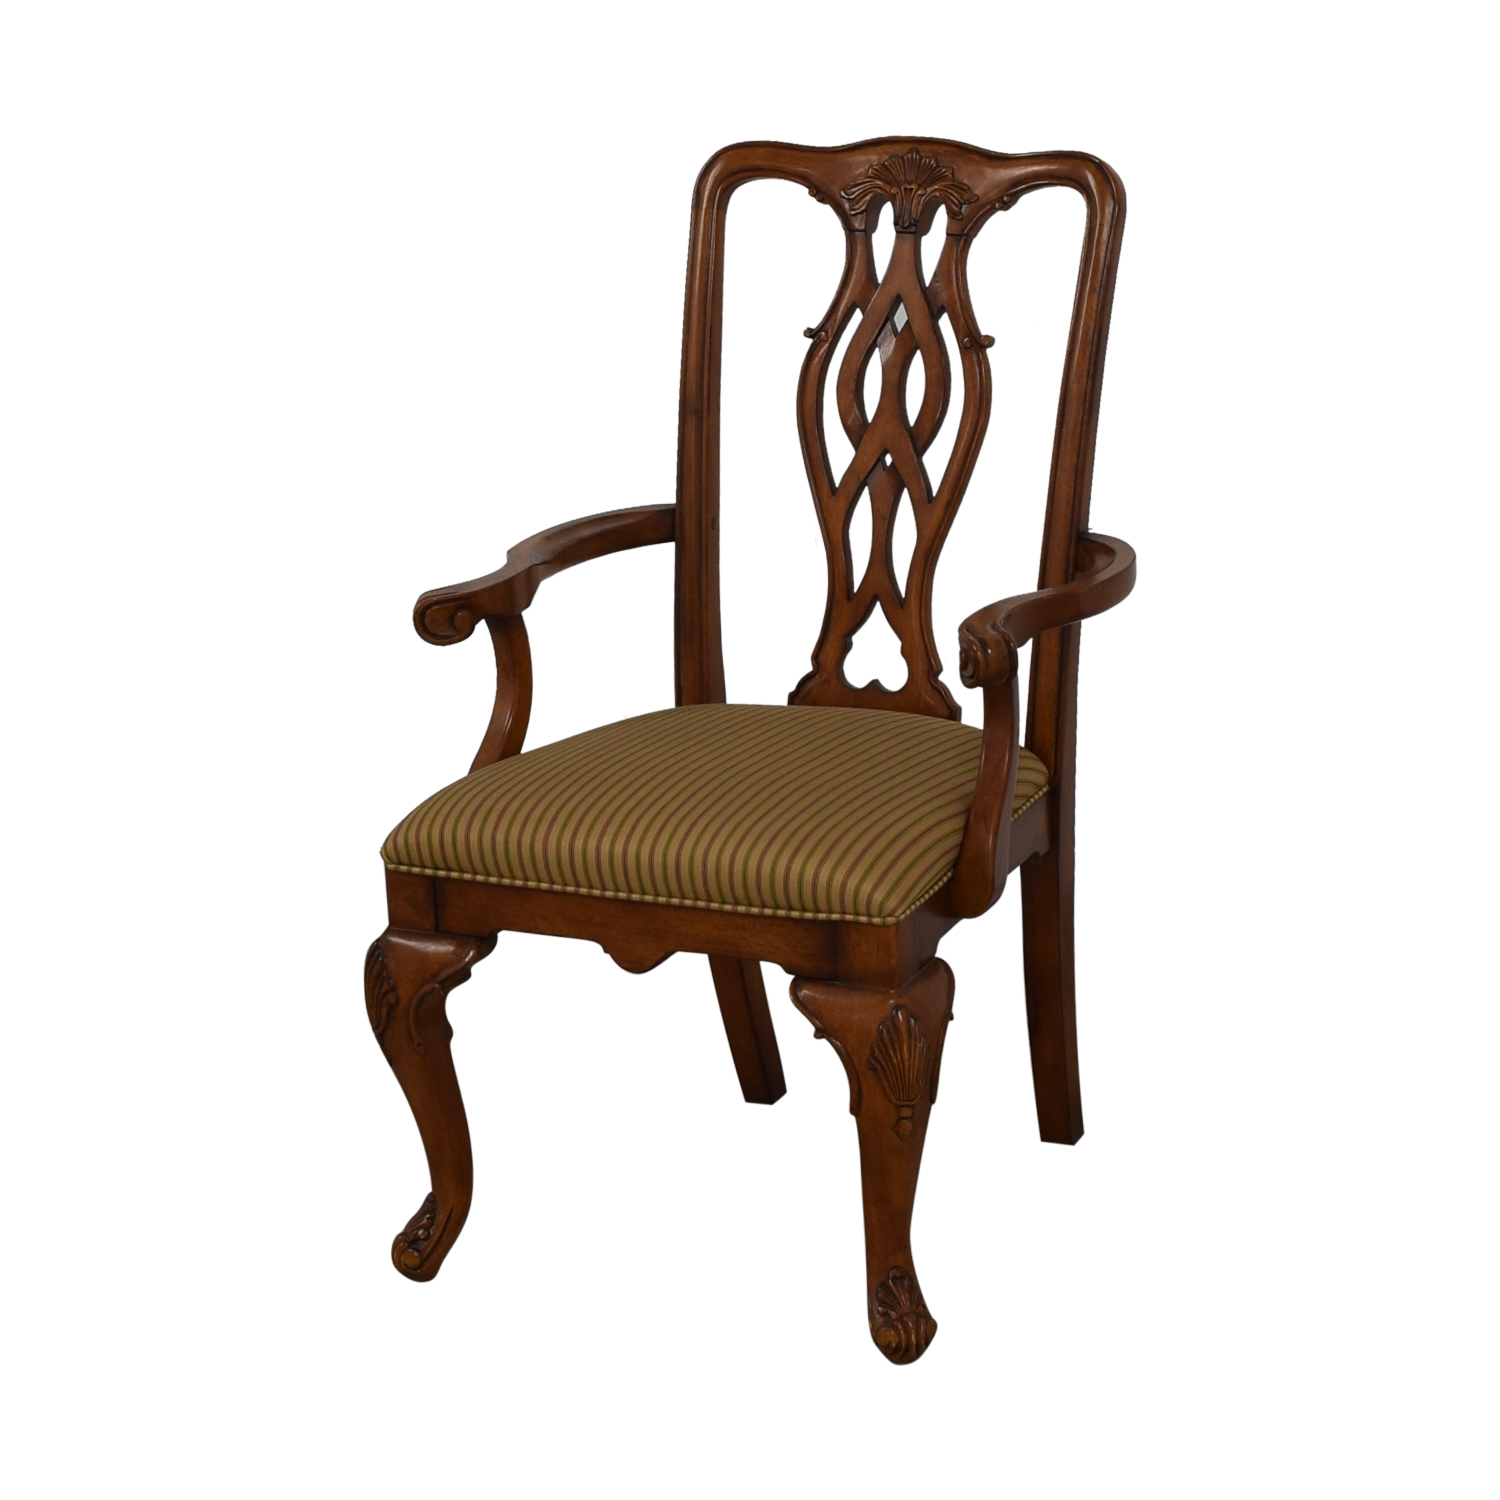 70 Off Drexel Heritage Drexel Heritage Dining Chairs Chairs